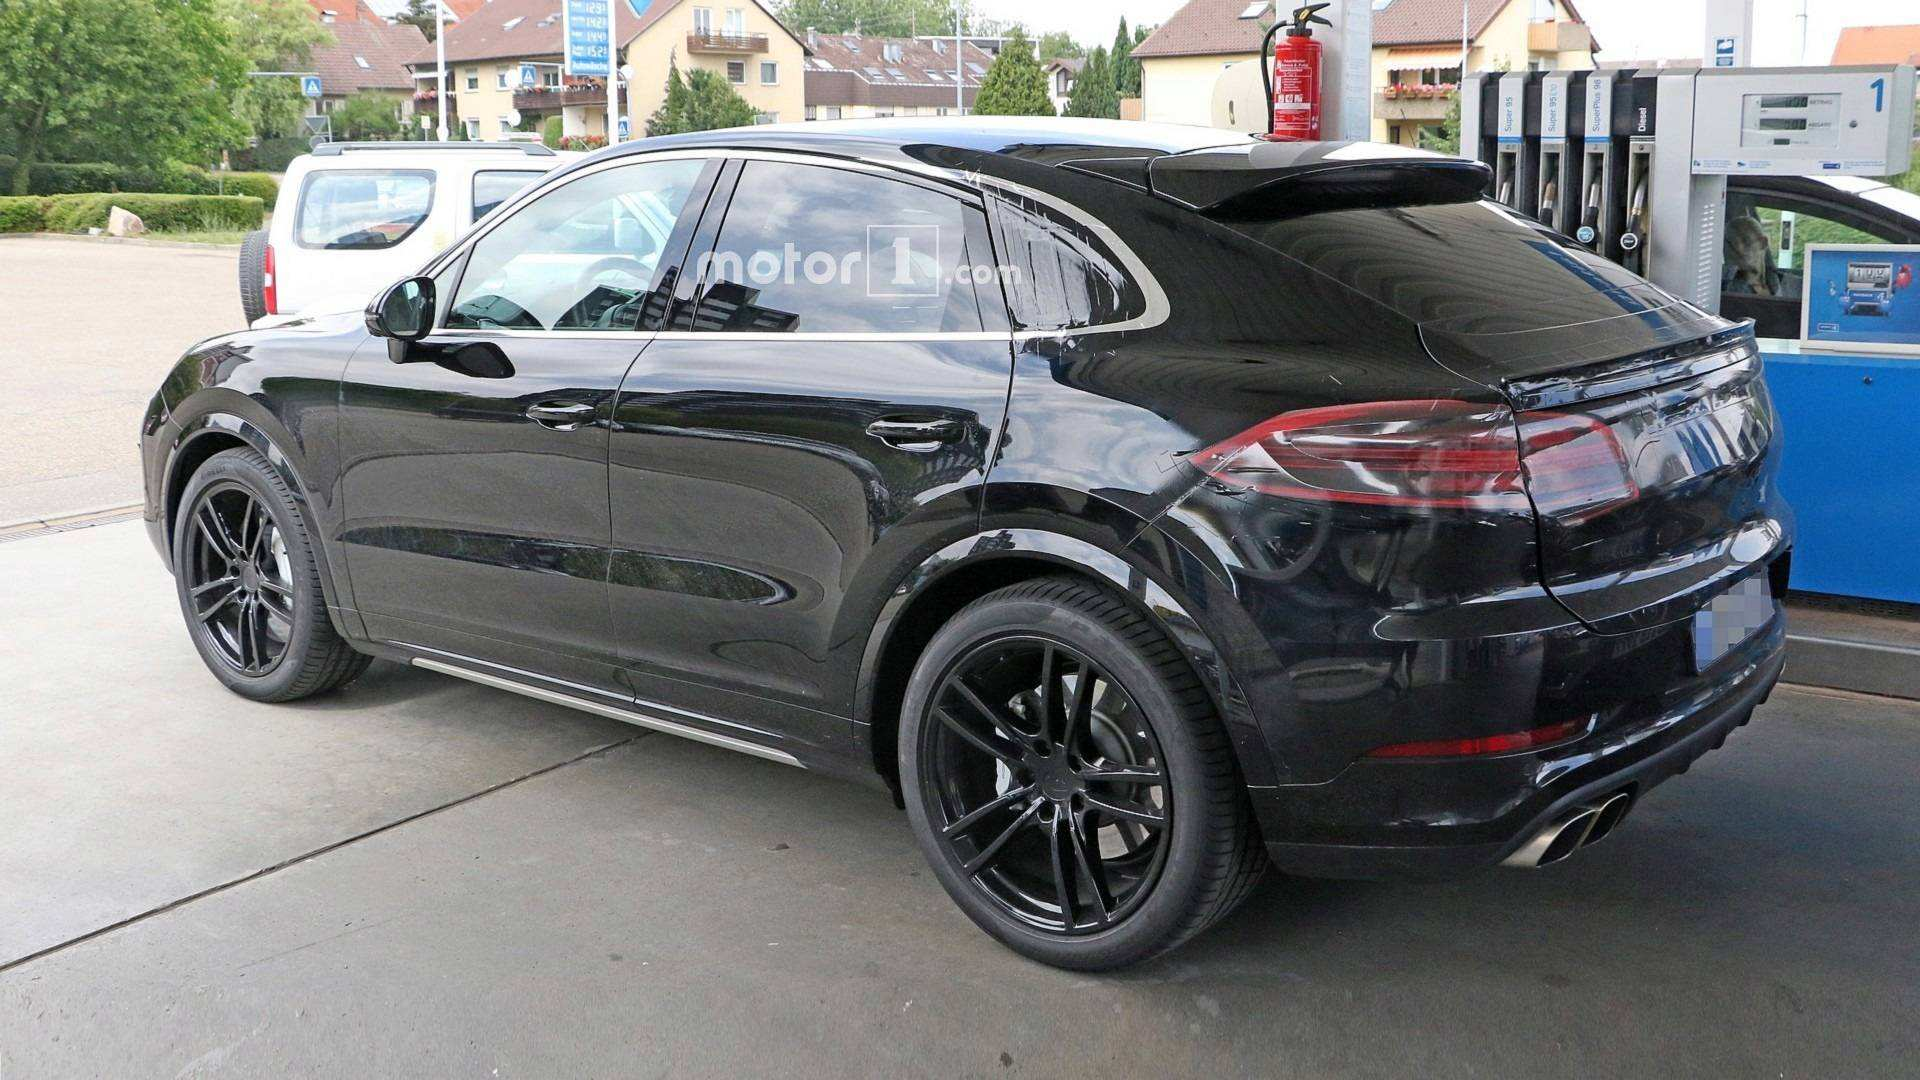 93 New 2020 Porsche Cayenne Model Spy Shoot